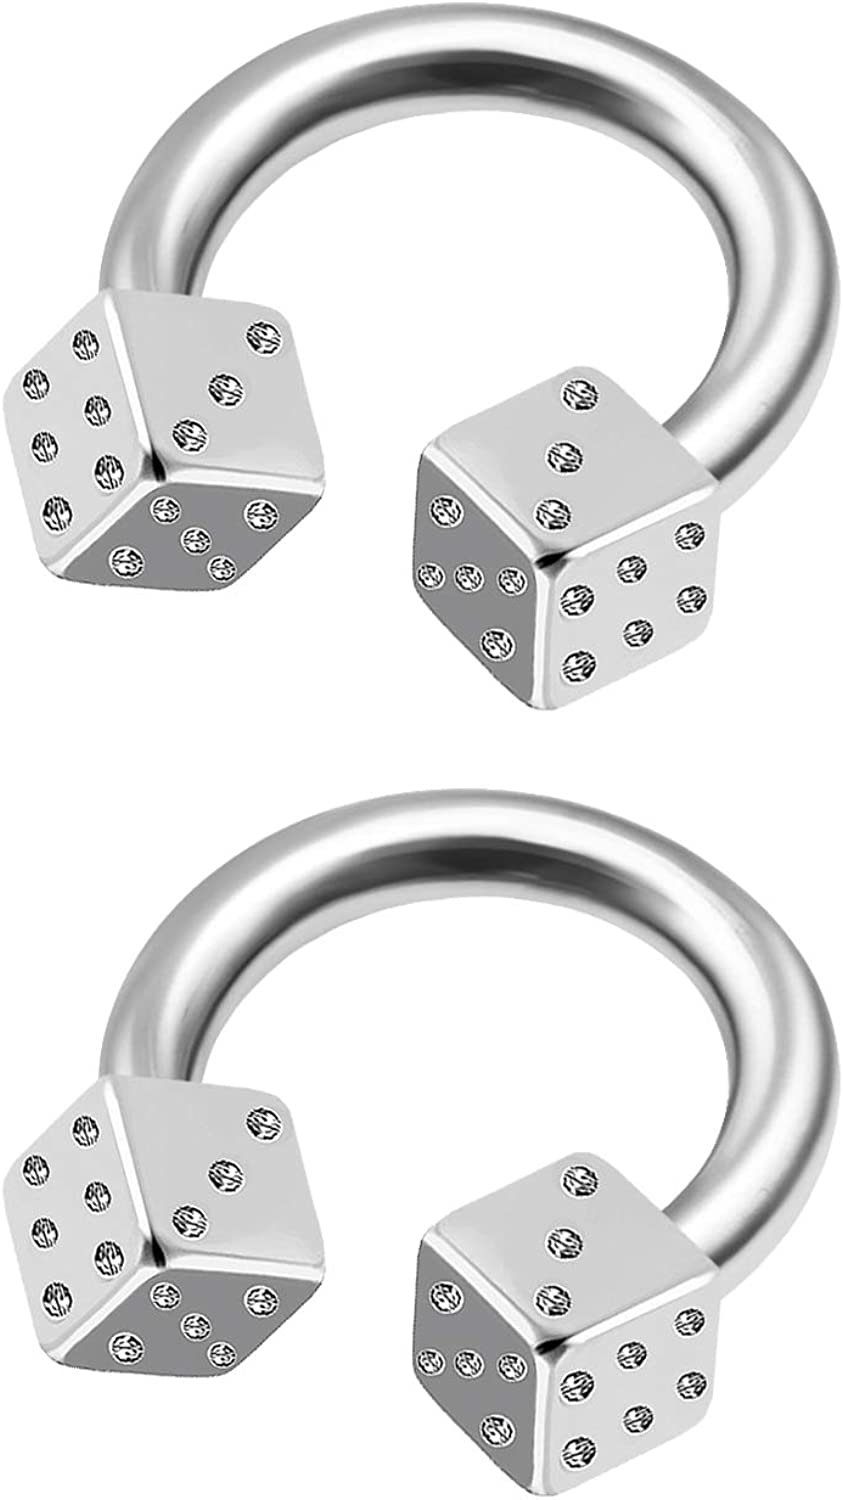 MATIGA 2Pcs Surgical Steel 14 Gauge Ring Horseshoe Piercing Jewelry Tragus Eyebrow Daith Septum Cartilage 4mm Dice More Choices